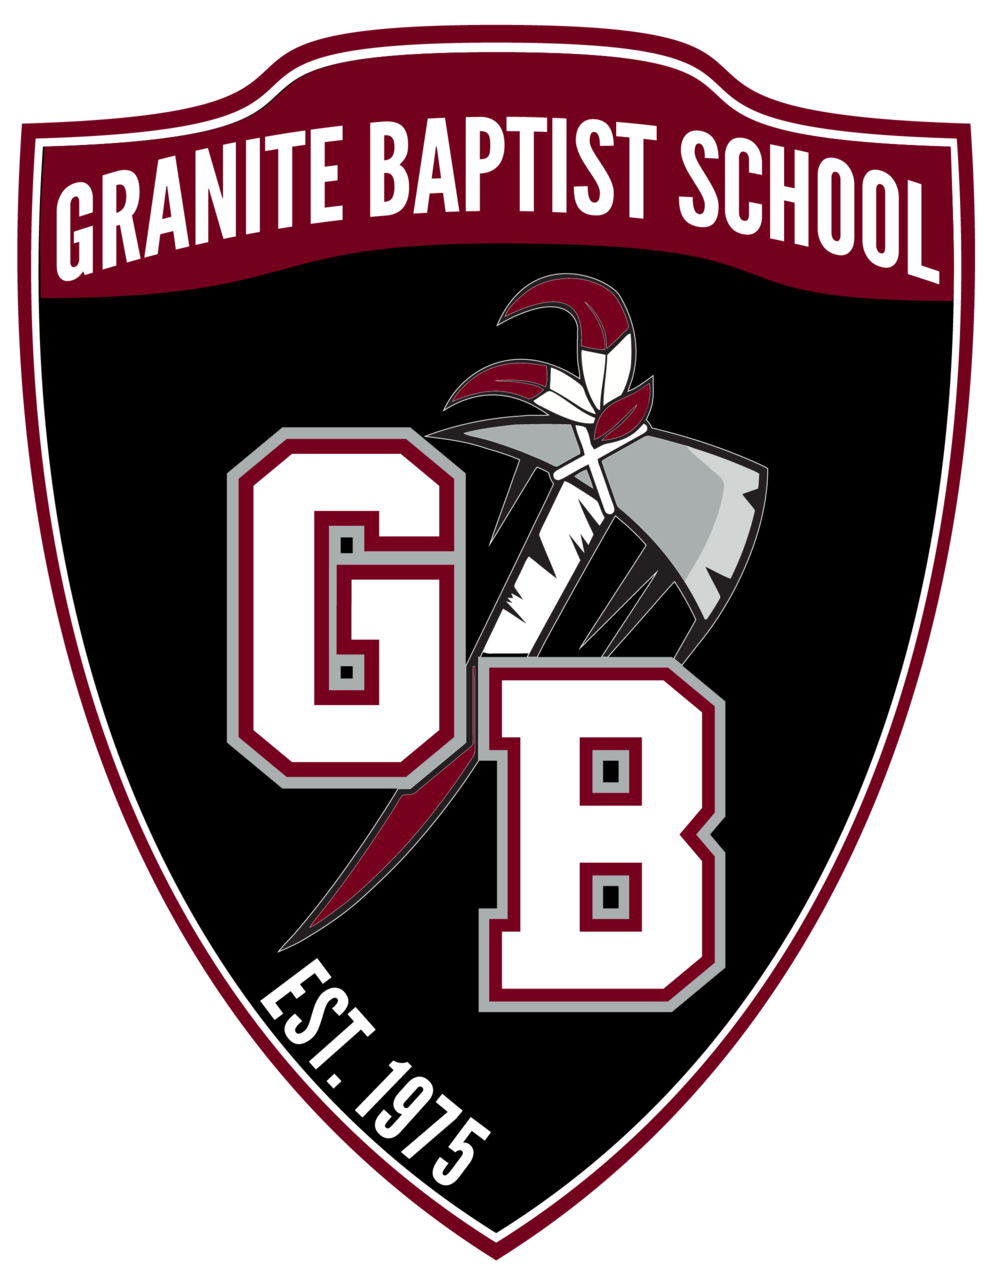 Granite Baptist Church School   7823 Oakwood Road, Glen Burnie, MD 21061  410-761-1118  http://granitebaptistschool.org/  Administrator: Mr. Charlie Clayton  Athletic Director: Mr. Charlie Clayton  Email: charlie.clayton@granitebaptist.org